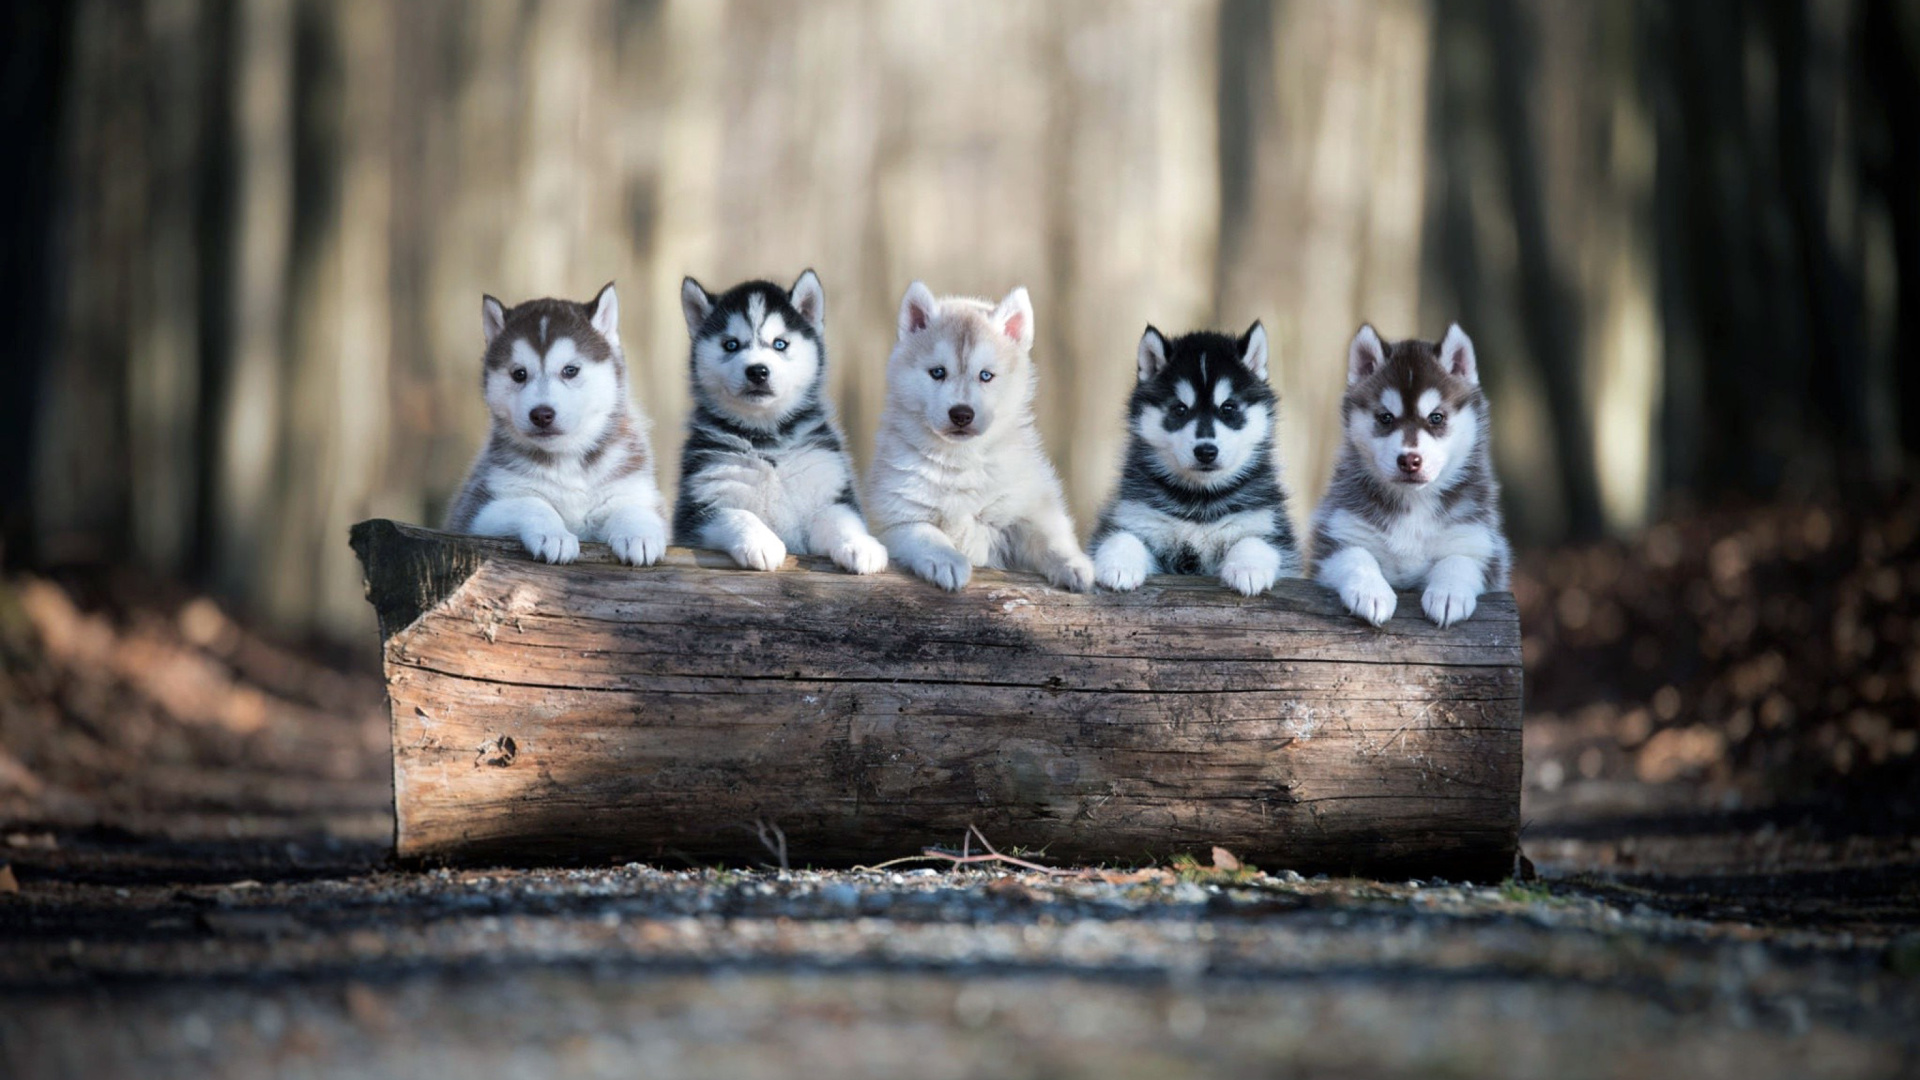 Alaskan Malamute Puppies wallpaper 1920x1080